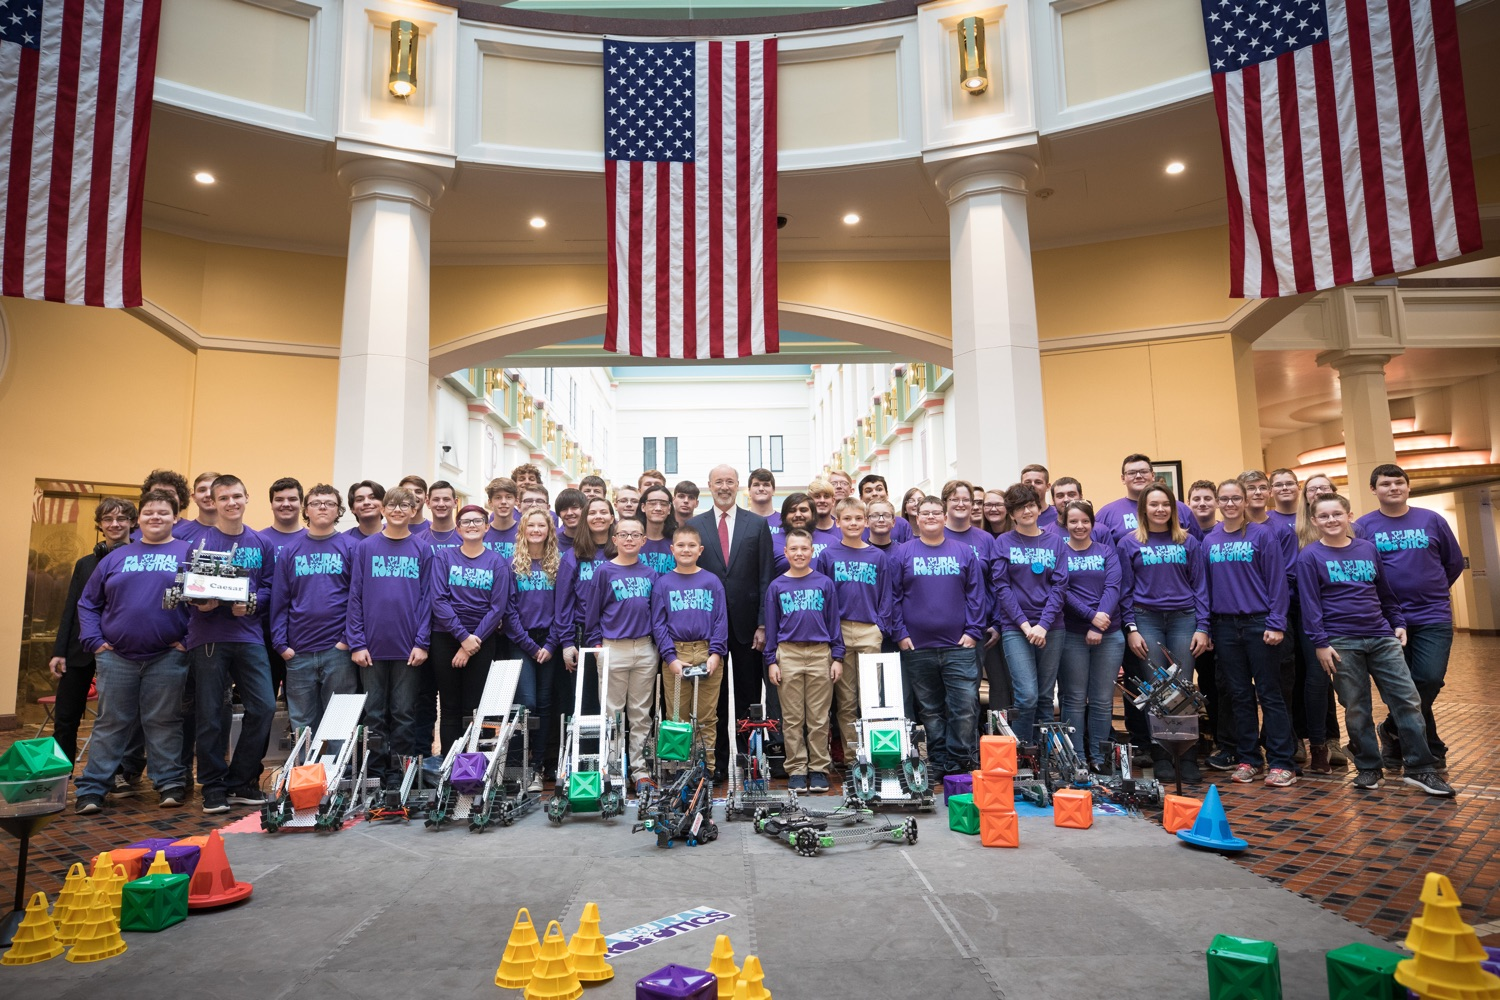 """<a href=""""https://filesource.wostreaming.net/commonwealthofpa/photo/17587_gov_pasmart_rural_robotics_dz_006.jpg"""" target=""""_blank"""">⇣Download Photo<br></a>Pennsylvania Governor Tom Wolf posing with students at the robotics demonstration.  Celebrating the success of the PAsmart workforce development program to create educational opportunities at schools across the commonwealth, Governor Tom Wolf welcomed more than 50 students from the Pennsylvania Rural Robotics Initiative to the Capitol today. The students from nine western Pennsylvania school districts showcased their skills in coding, robotics and drone technology. The Wolf administration awarded the initiative a $299,000 PAsmart Advancing Grant earlier this year. Harrisburg, PA  Tuesday, November 12, 2019"""